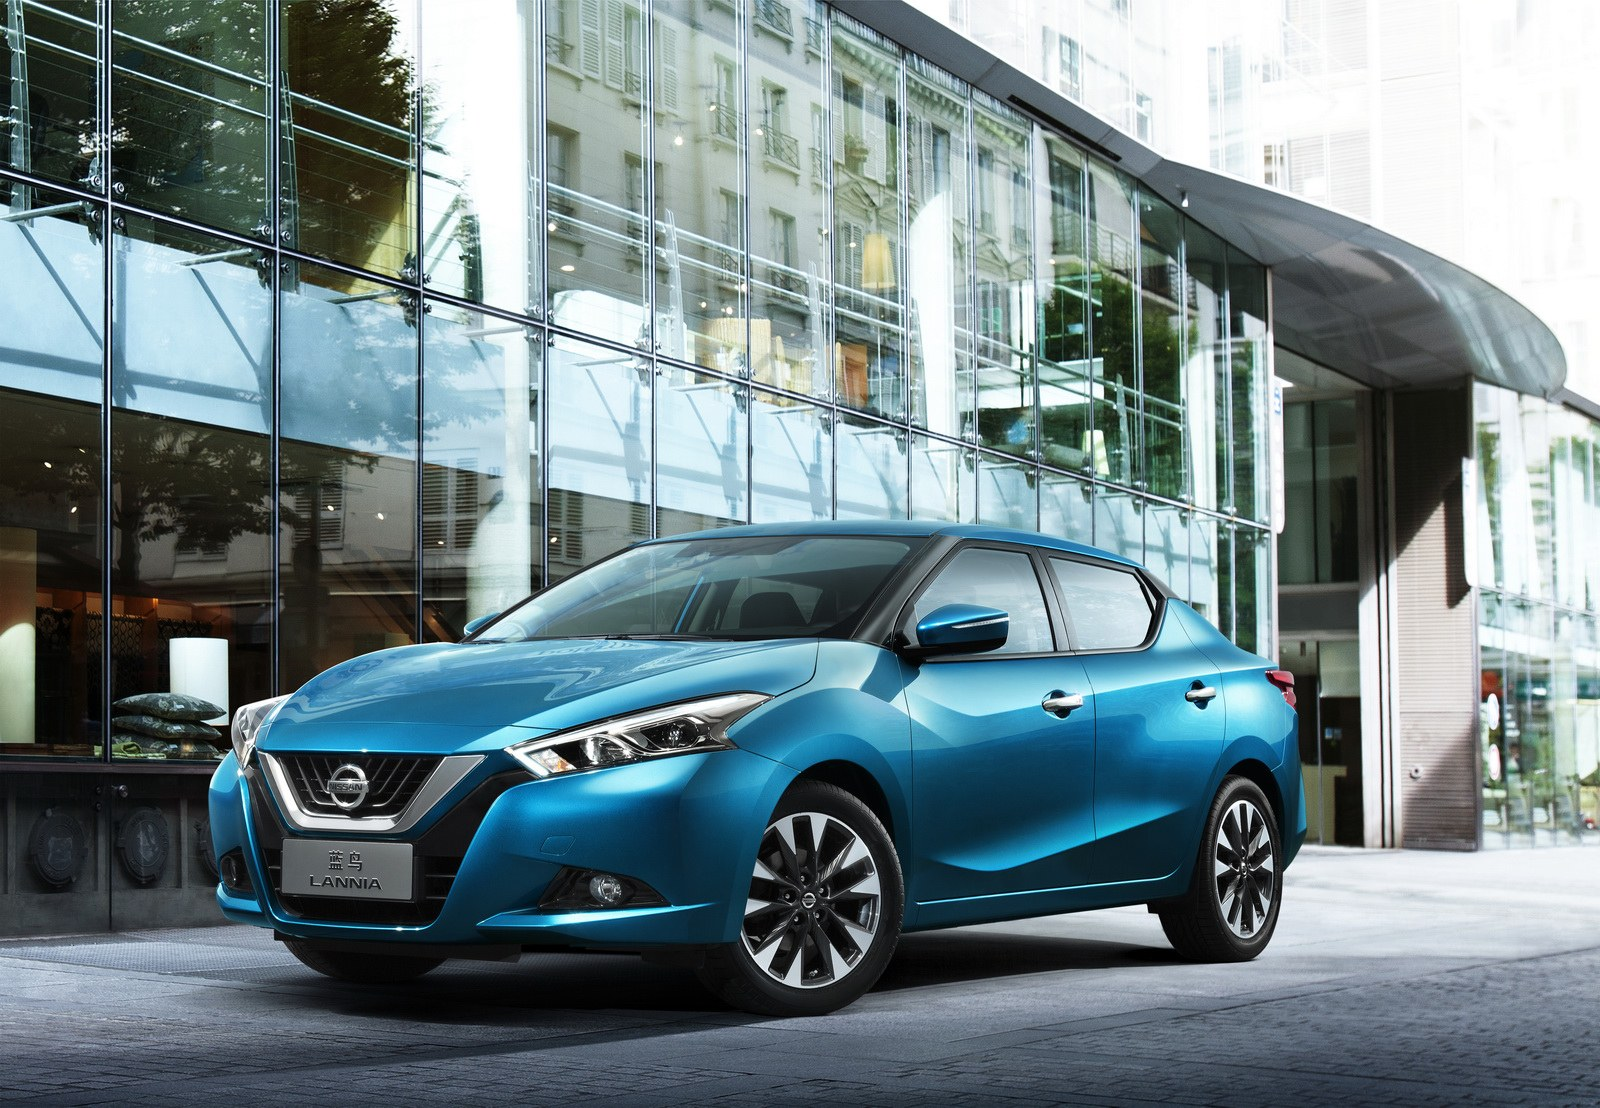 SHANGHAI, China (April 19, 2015) – Nissan unveiled the all-new Lannia at Auto Shanghai 2015, a culmination of vision taking the car from concept to reality.